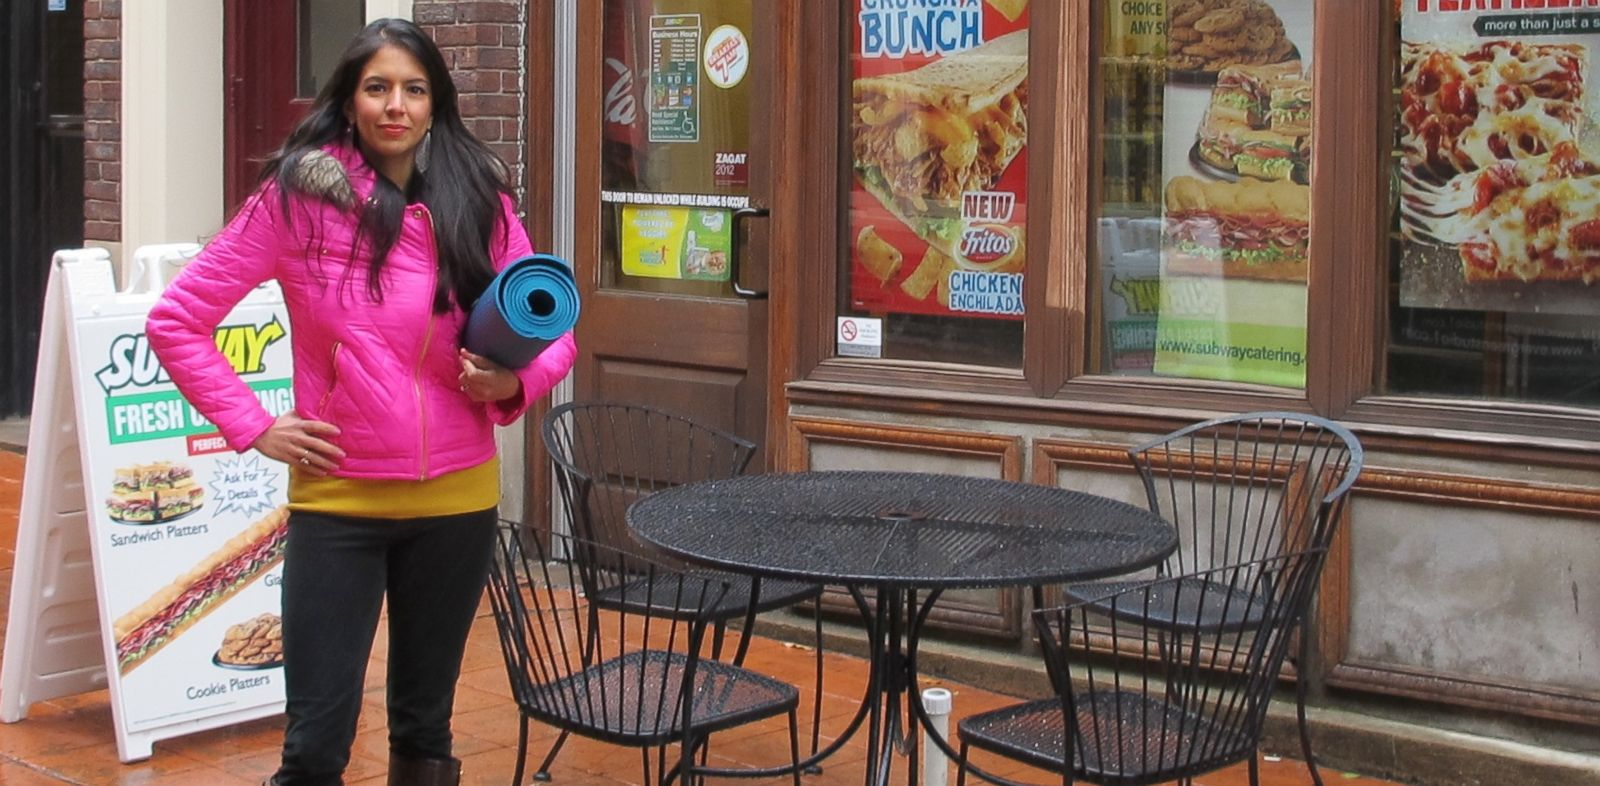 """PHOTO: Vani Hari, the """"food babe"""" blogger, is petitioning Subway to take a plastic chemical out of its bread."""